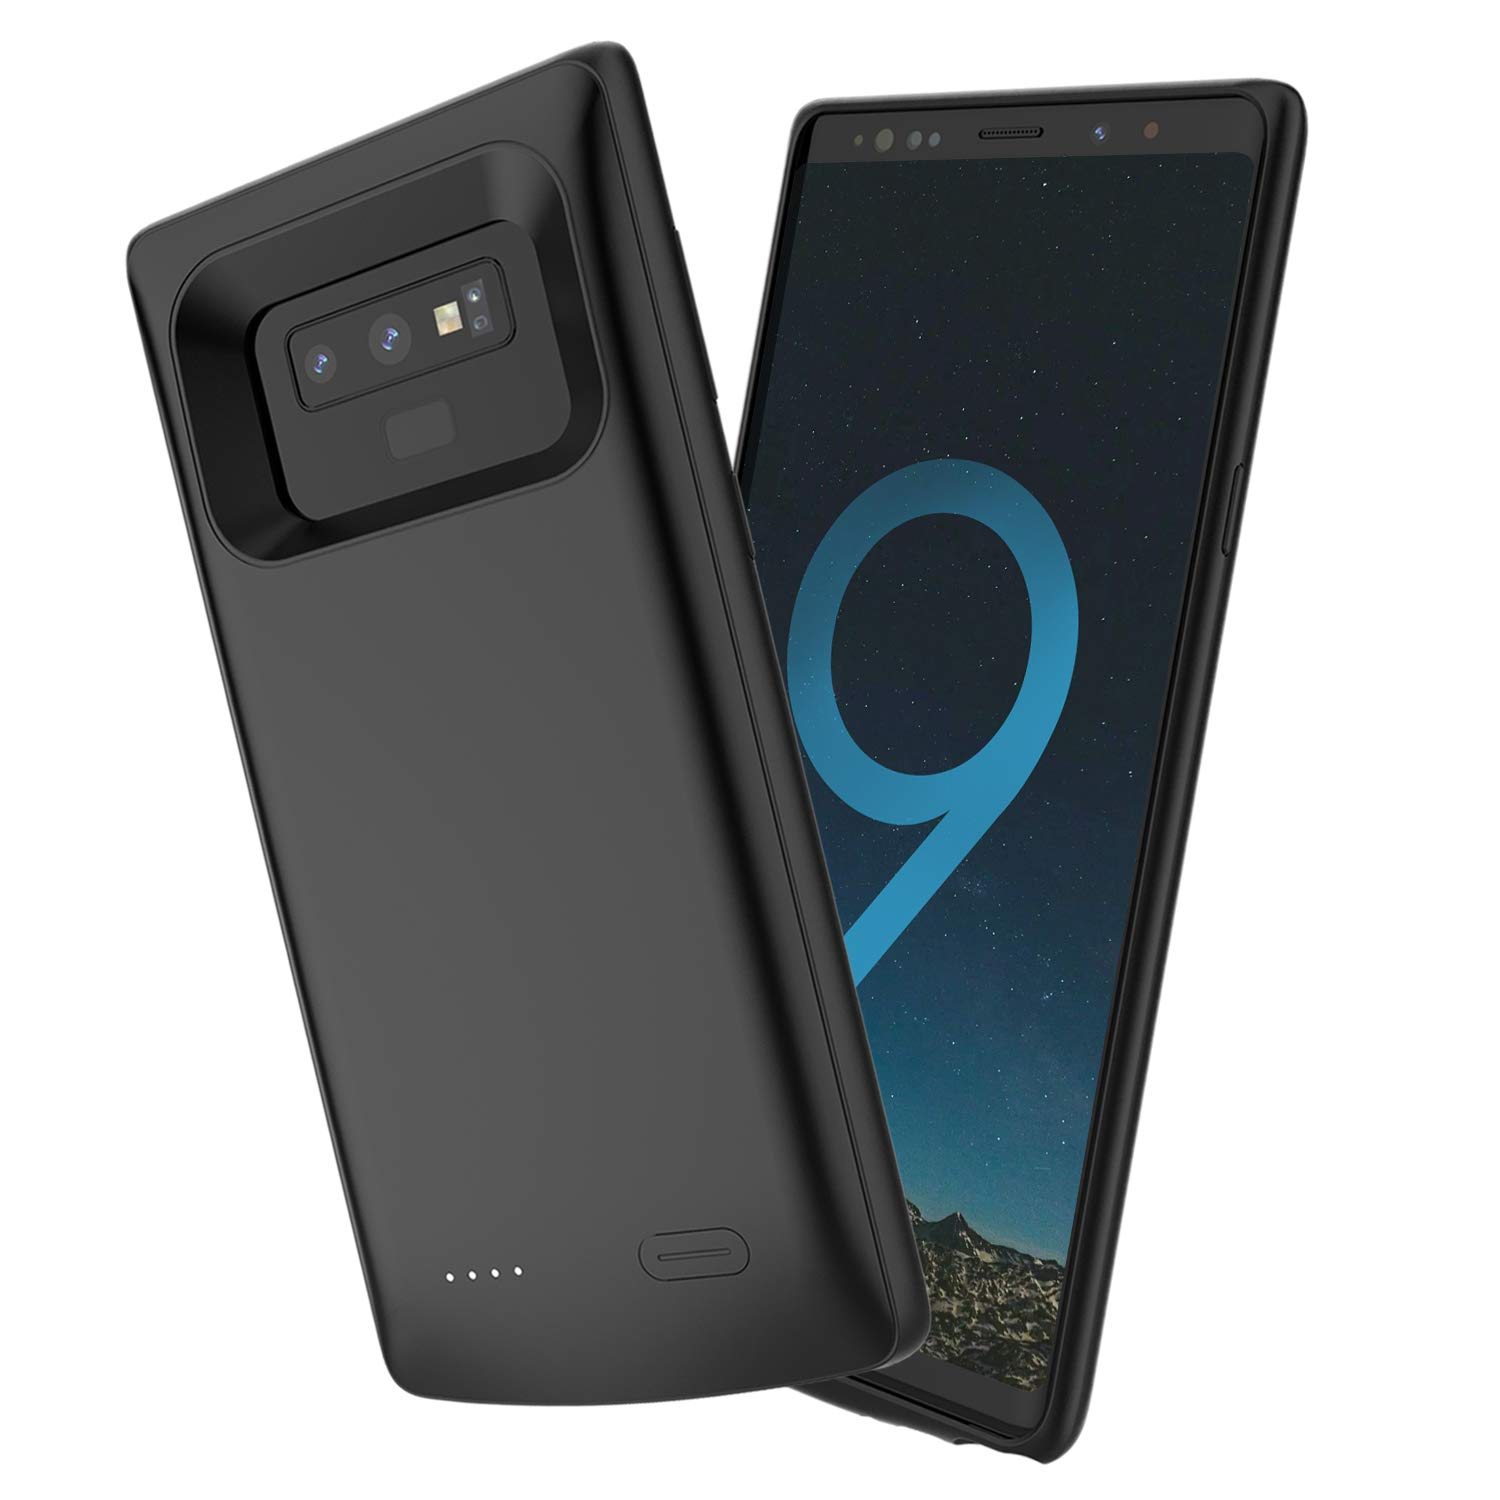 Galaxy-Note-9-battery-case-8